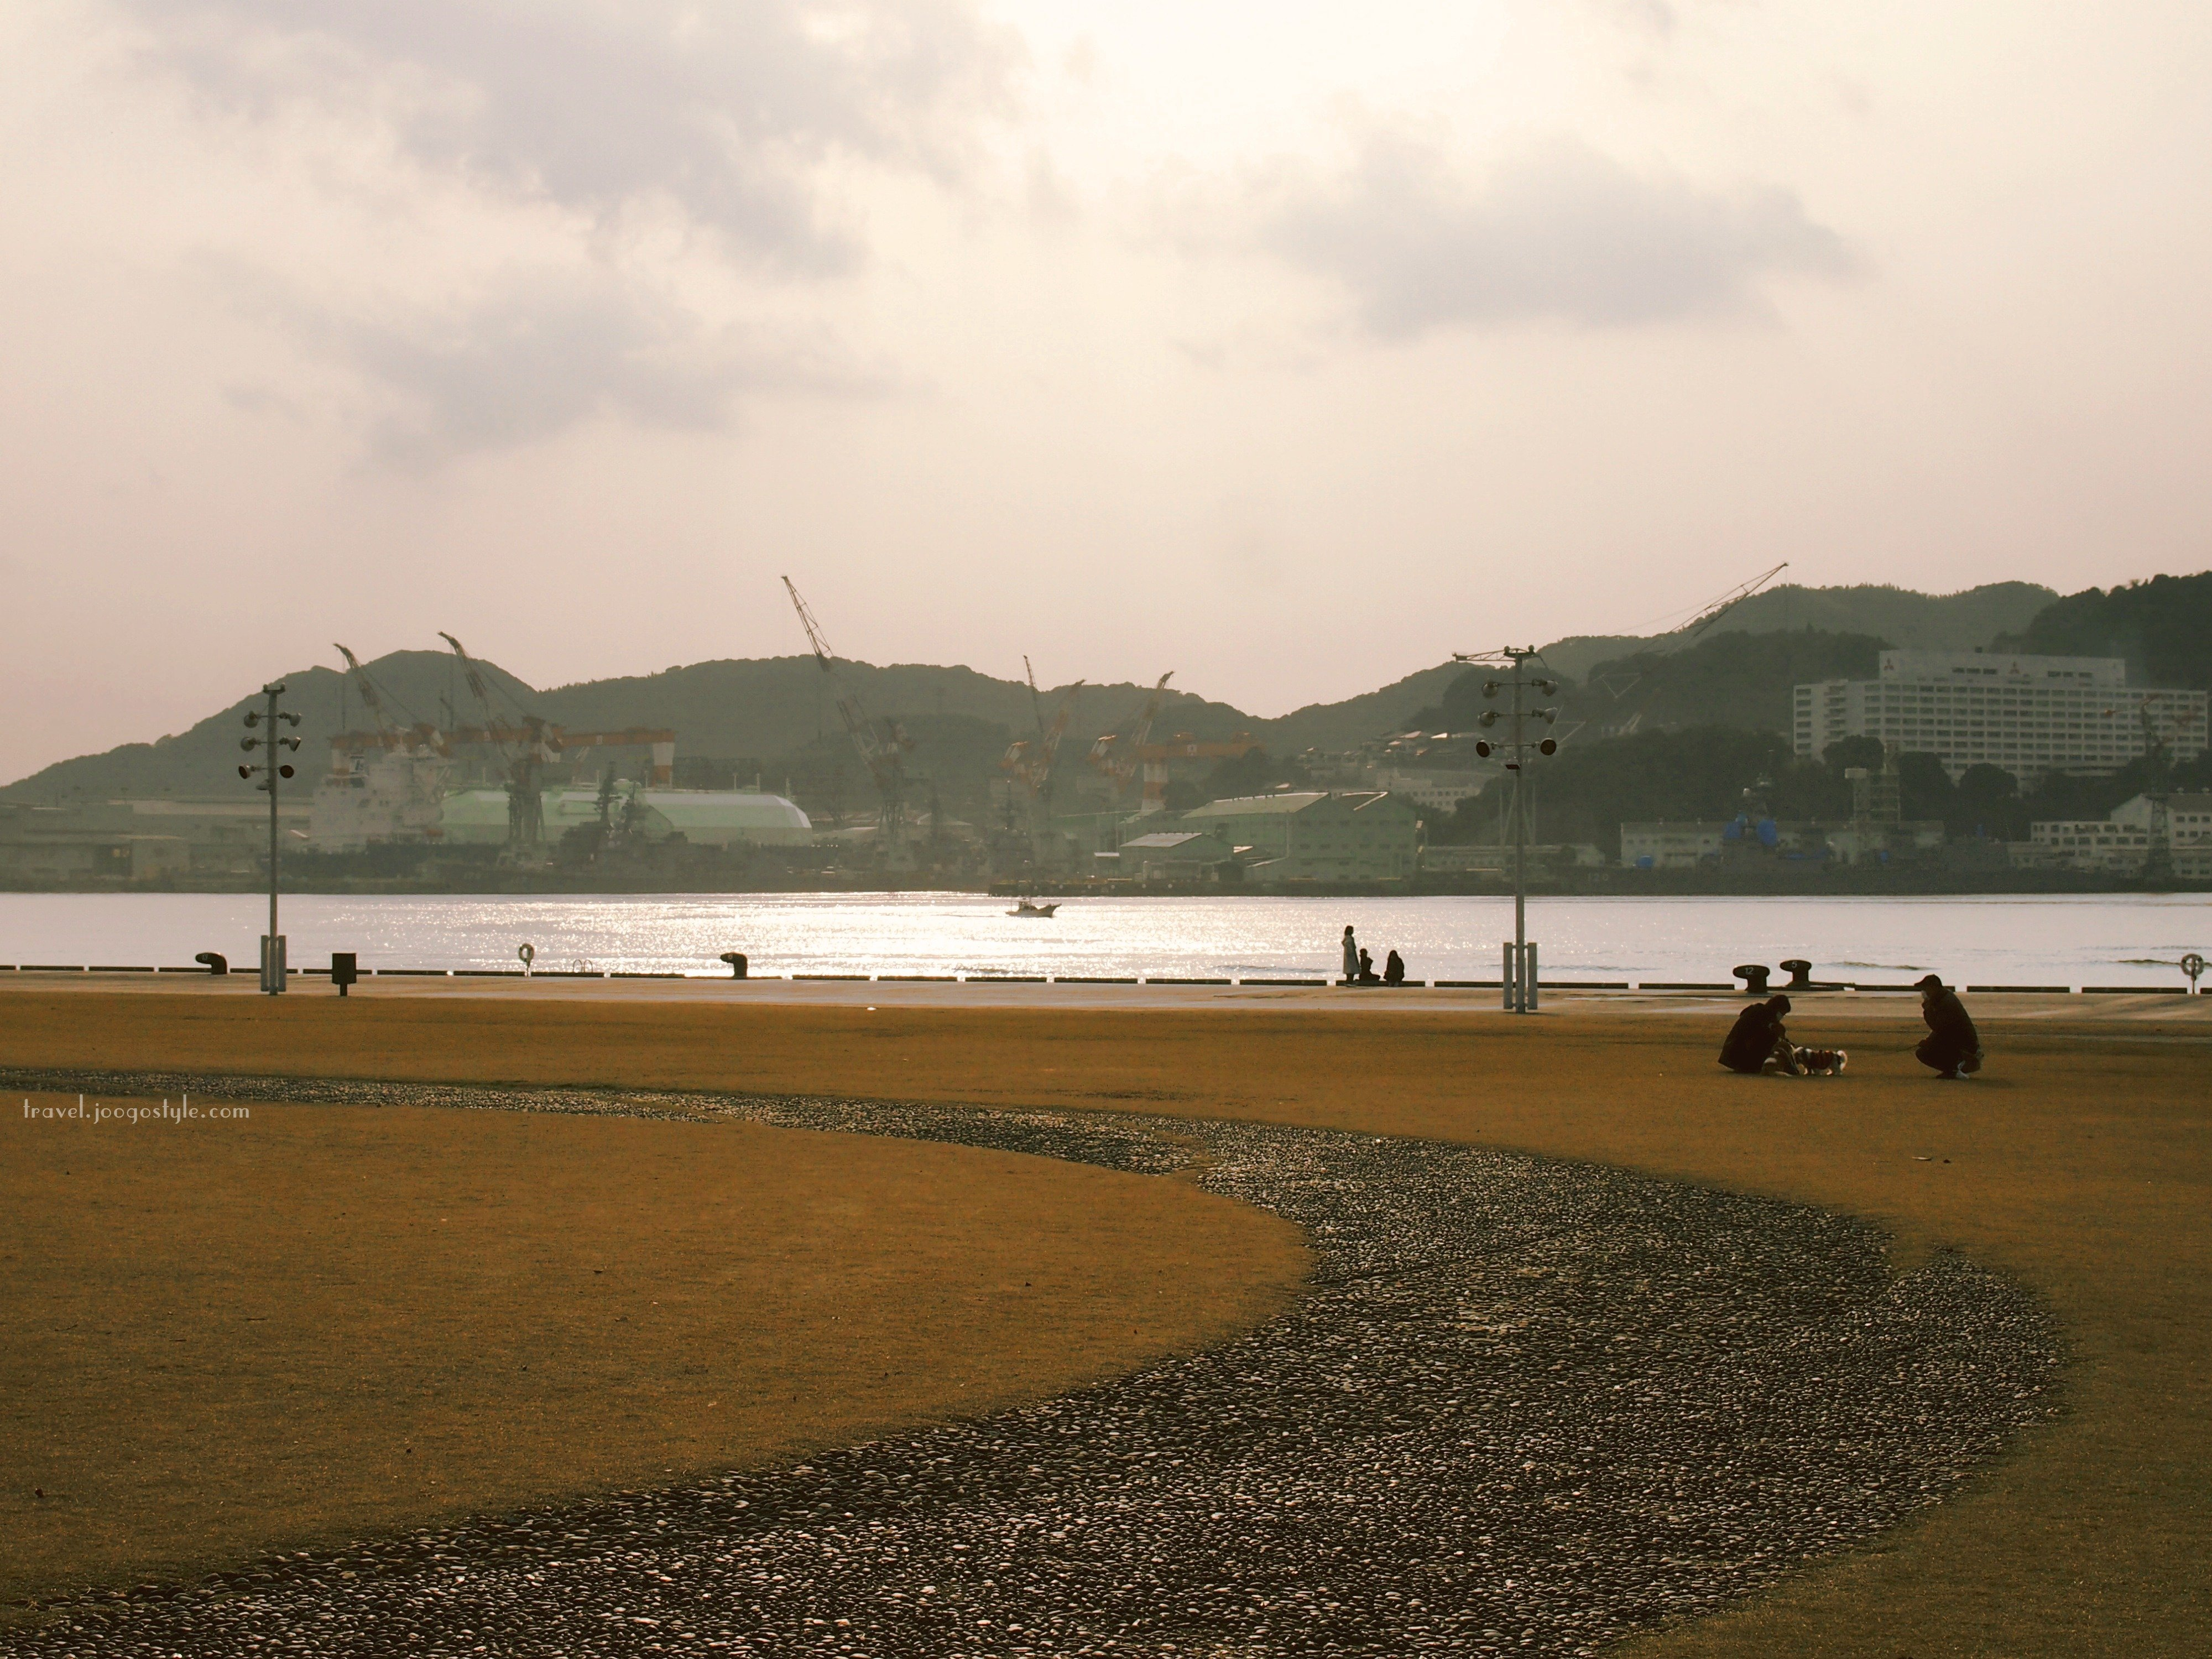 travel.joogostyle.com - What to Do in Nagasaki for 2 Days